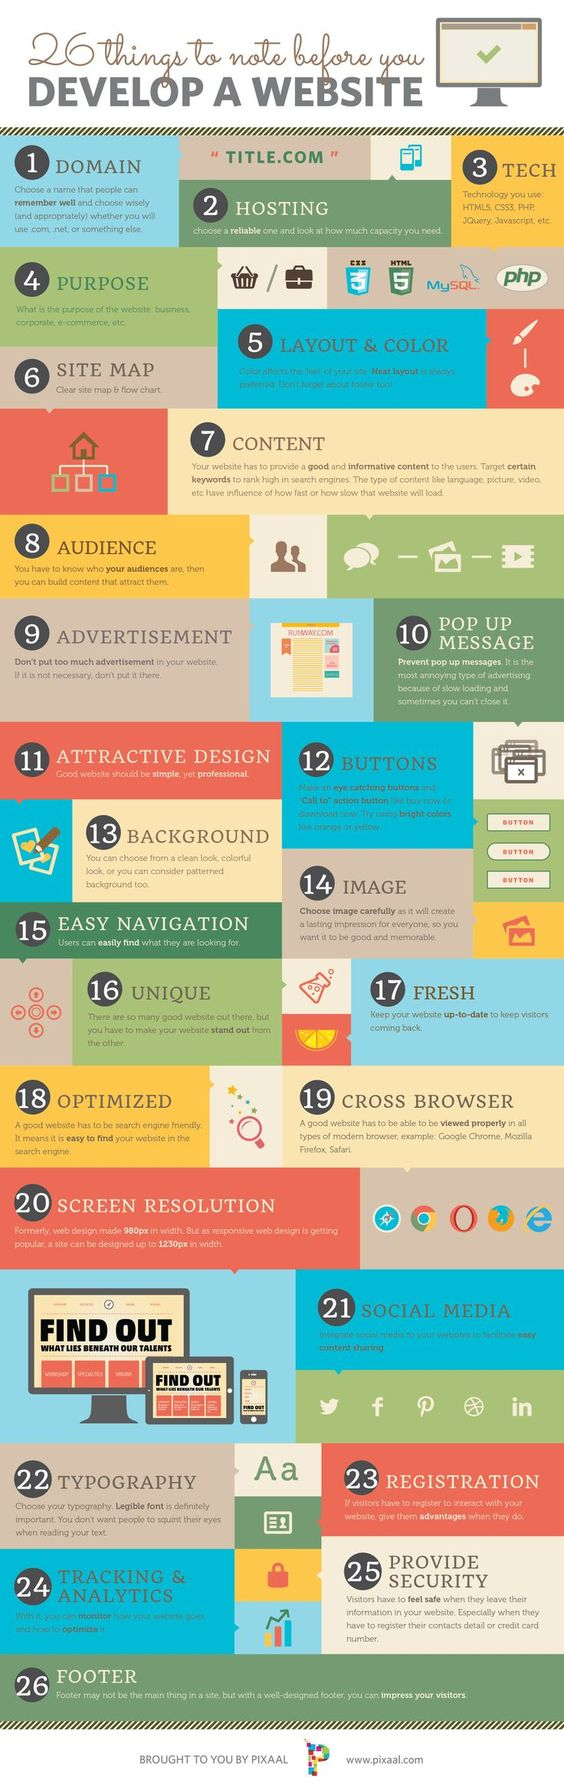 27 Things to do before developing your website